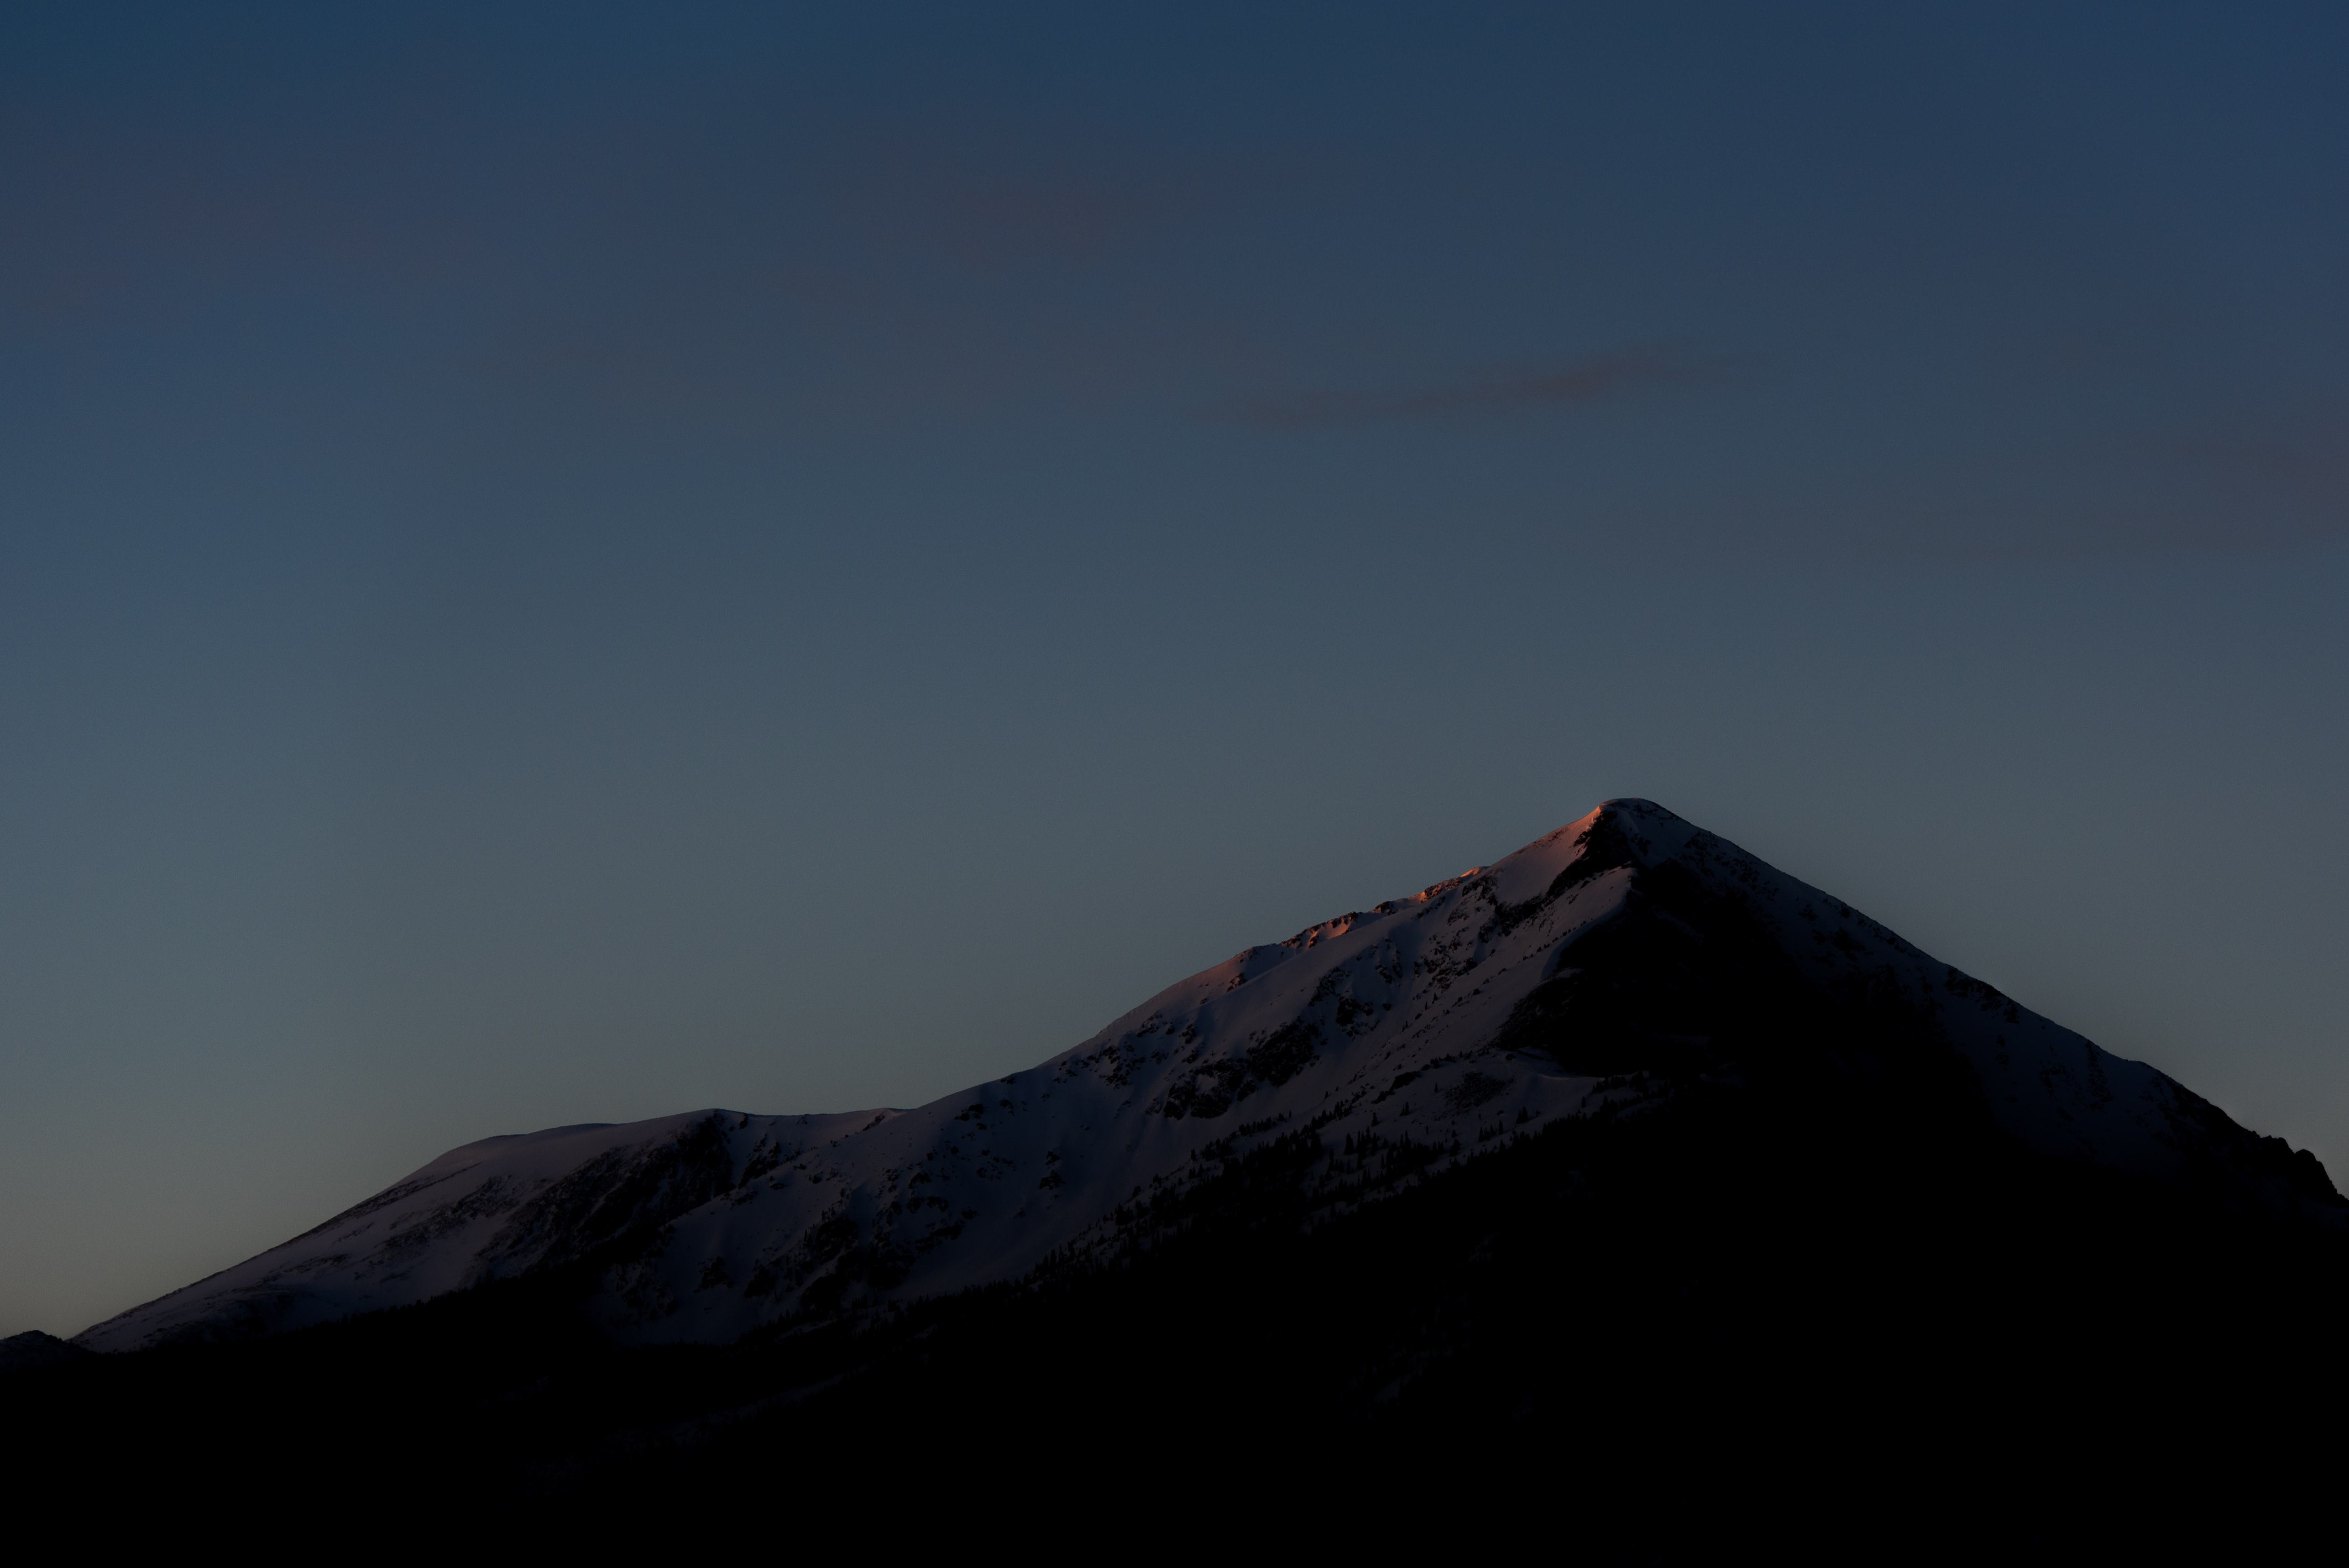 mountain silhouette at golden hour